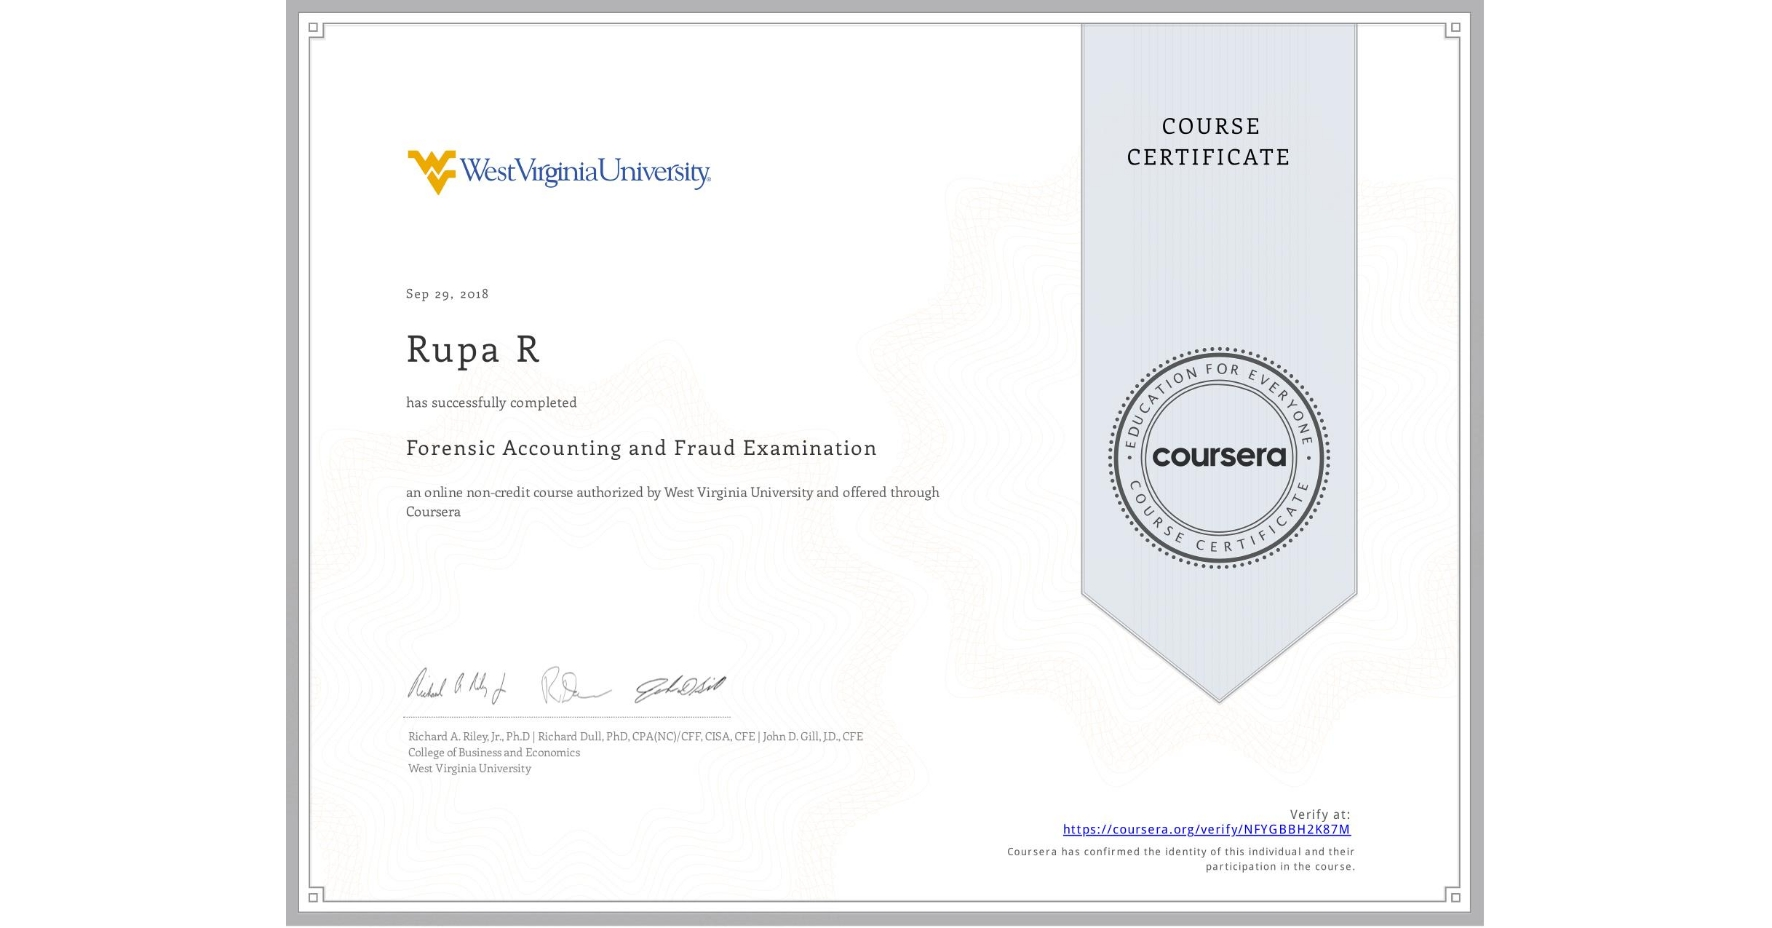 View certificate for Rupa R, Forensic Accounting and Fraud Examination, an online non-credit course authorized by West Virginia University and offered through Coursera